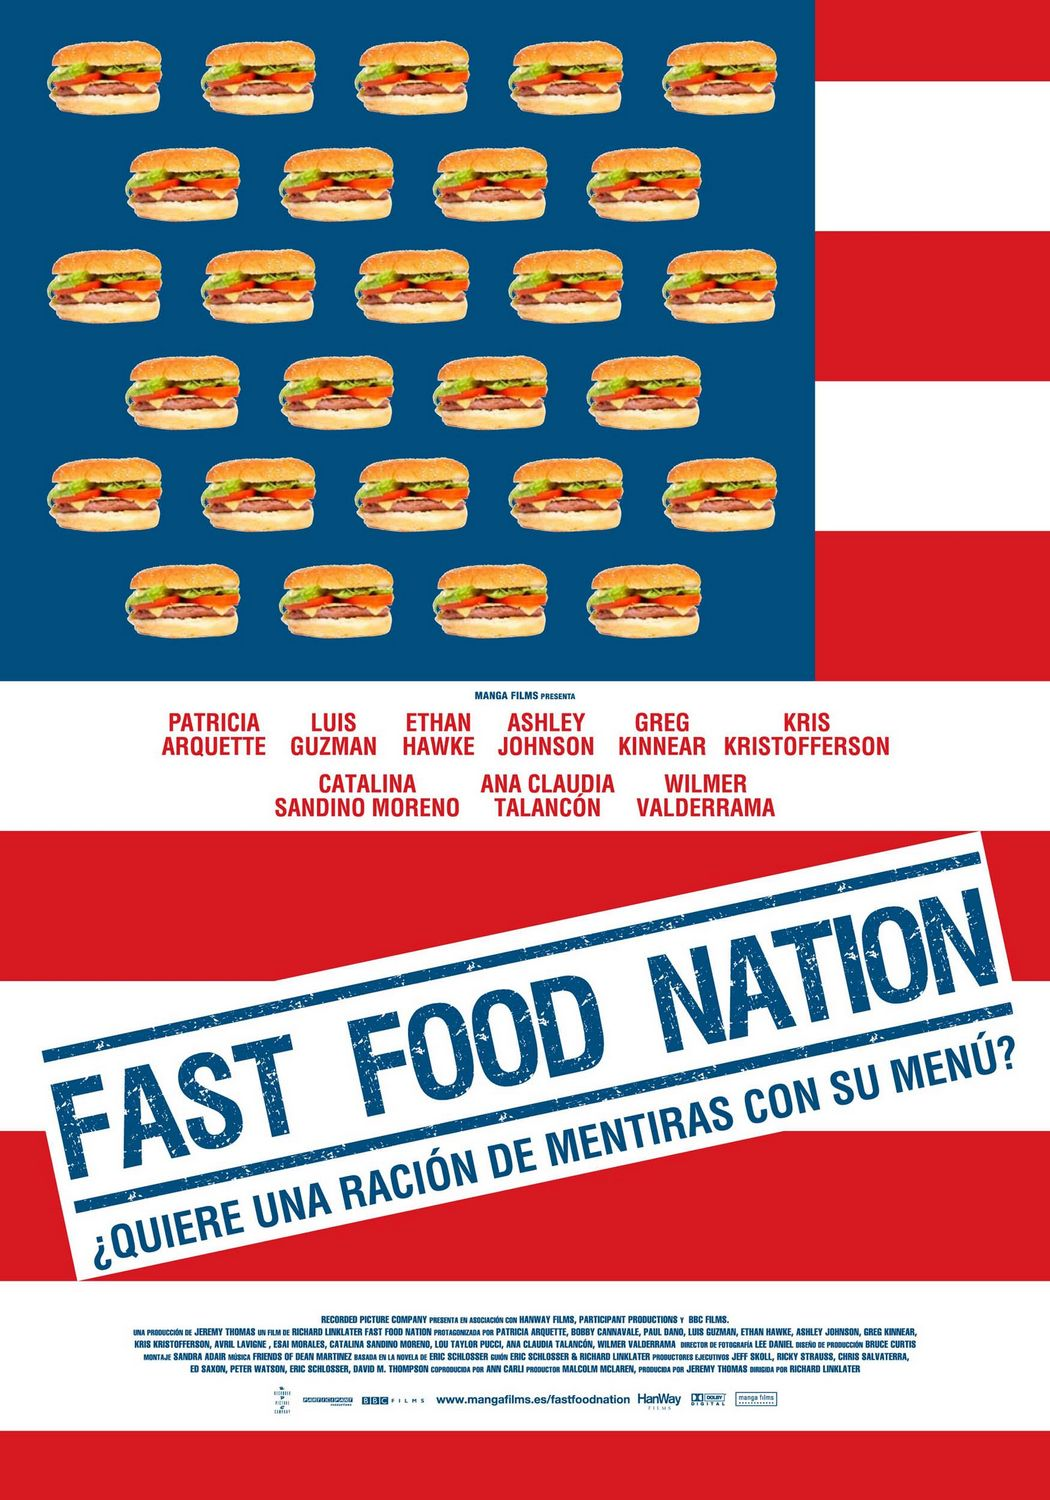 Fast Food Nation 3 Of 5 Extra Large Movie Poster Image